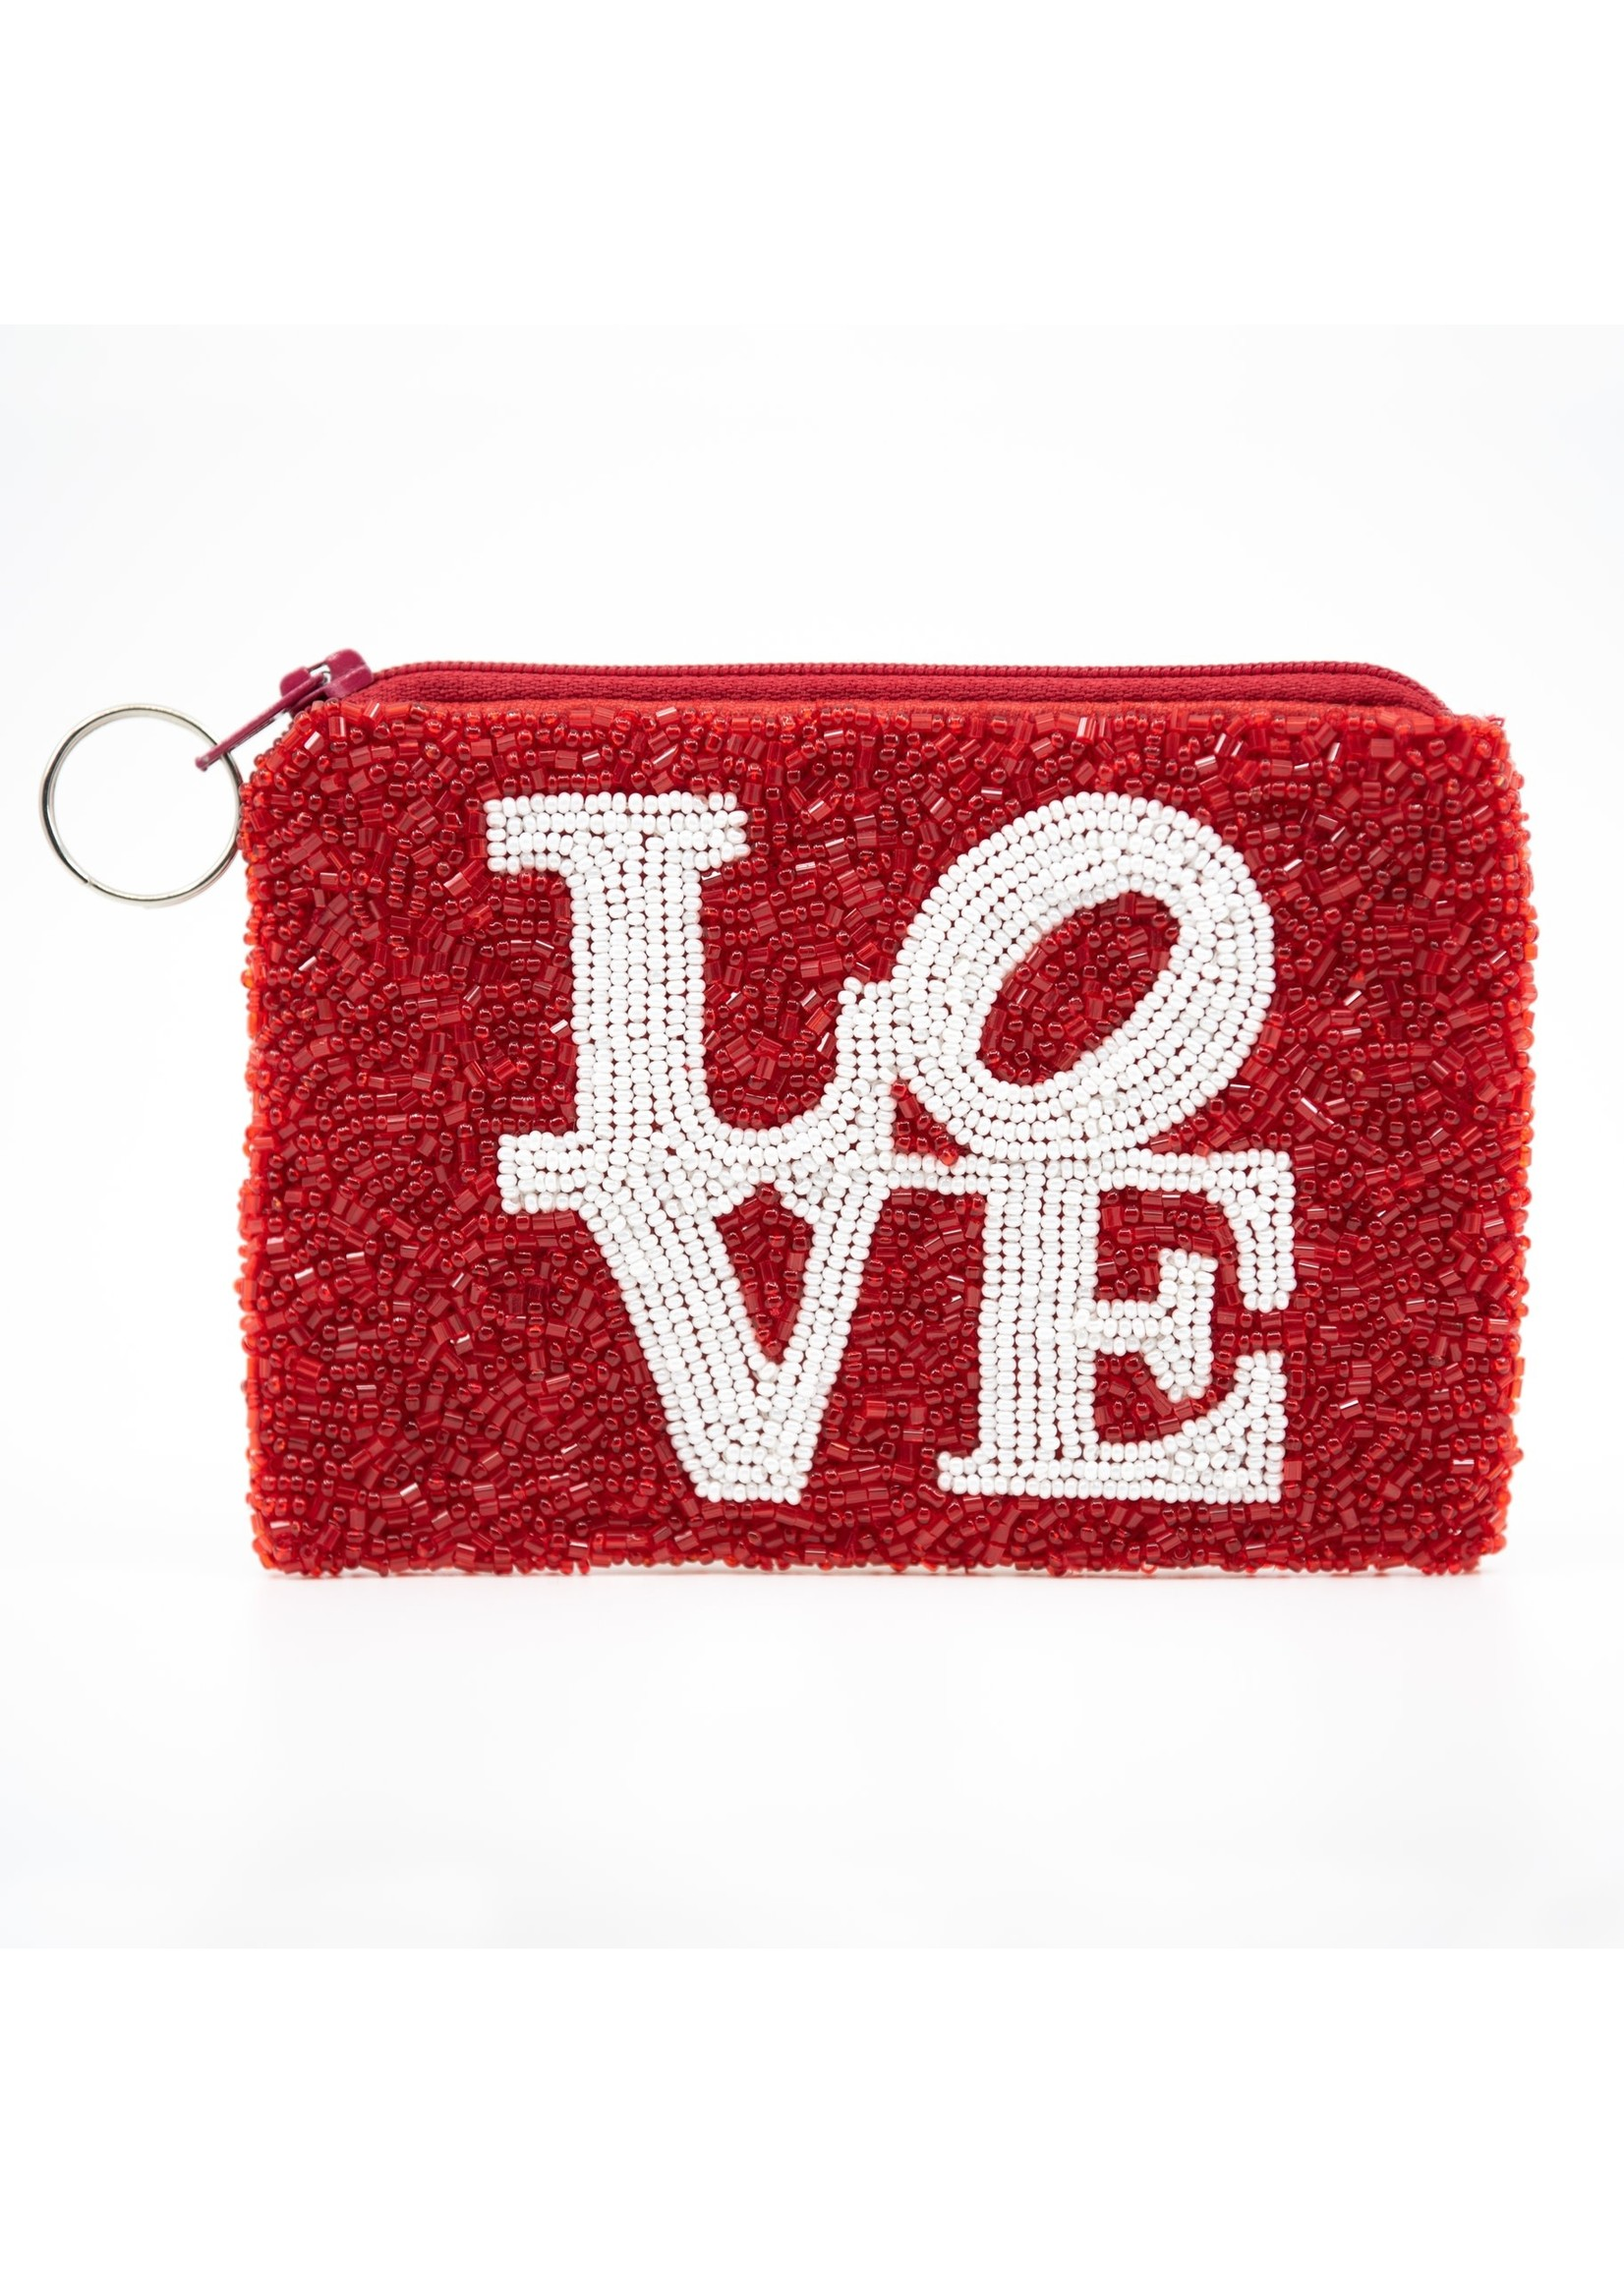 Love coin purse white on red